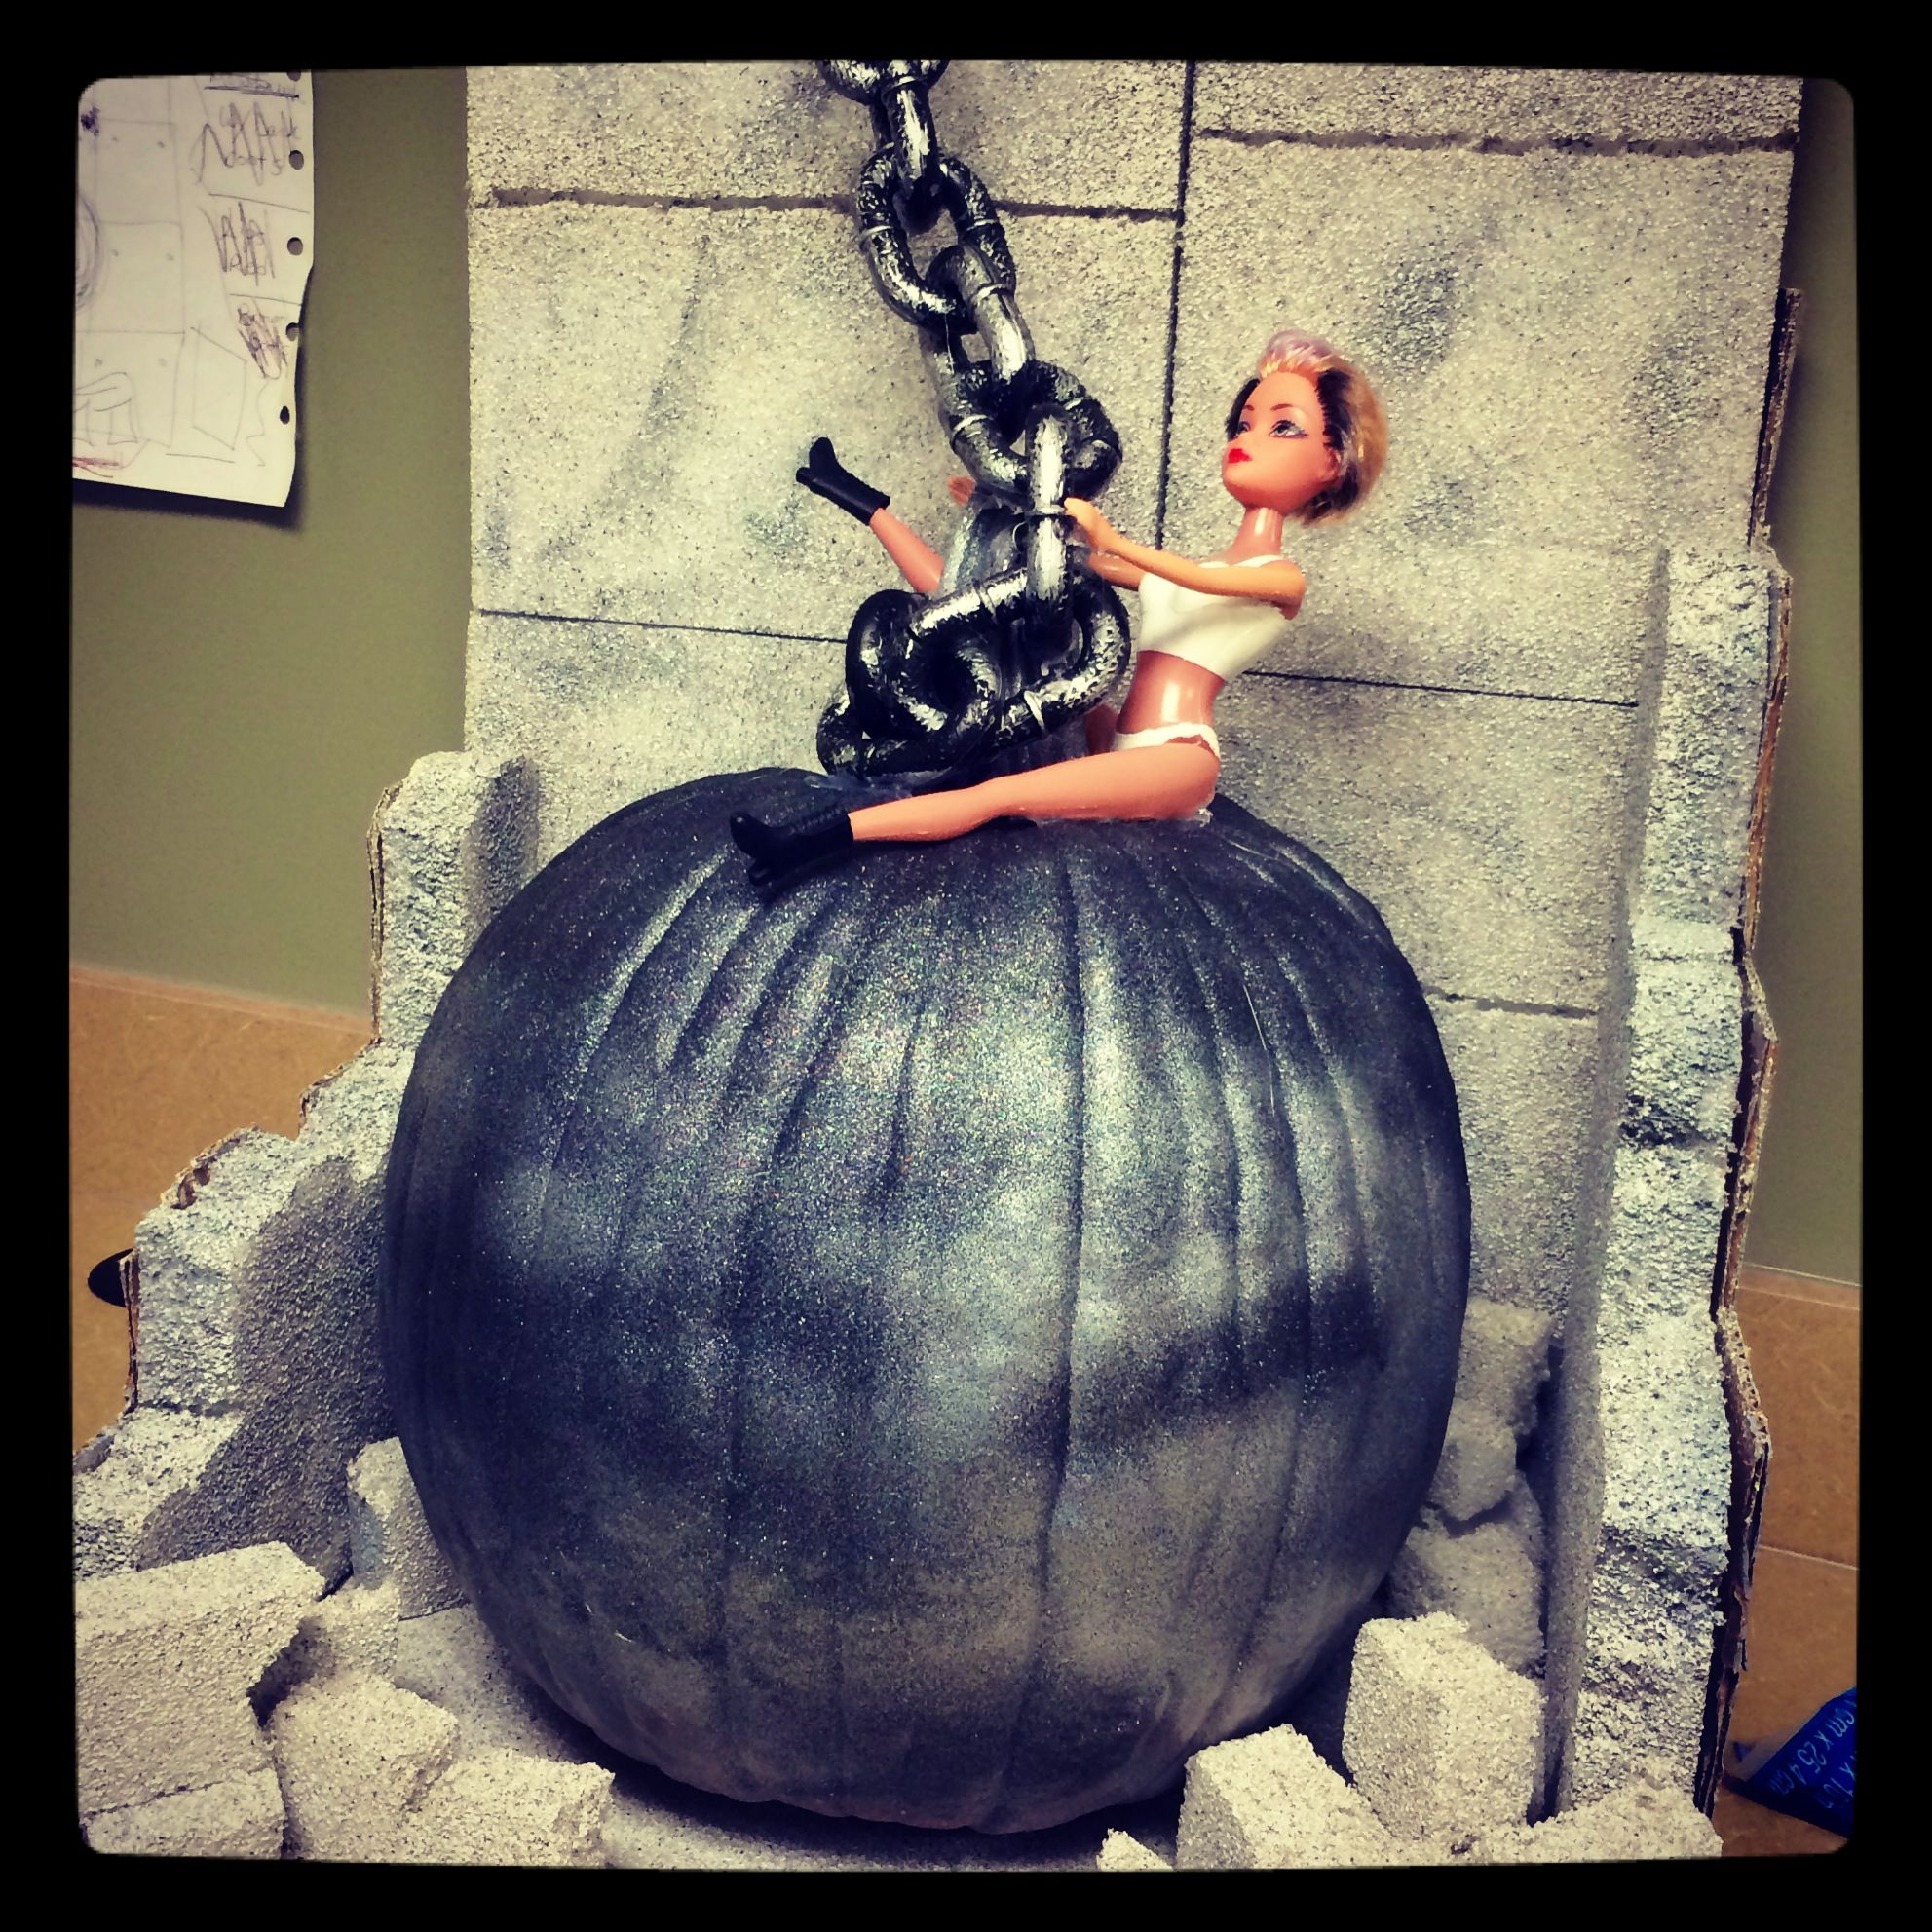 Pumpkin decorating contest at work | Fall | Pinterest | More ...